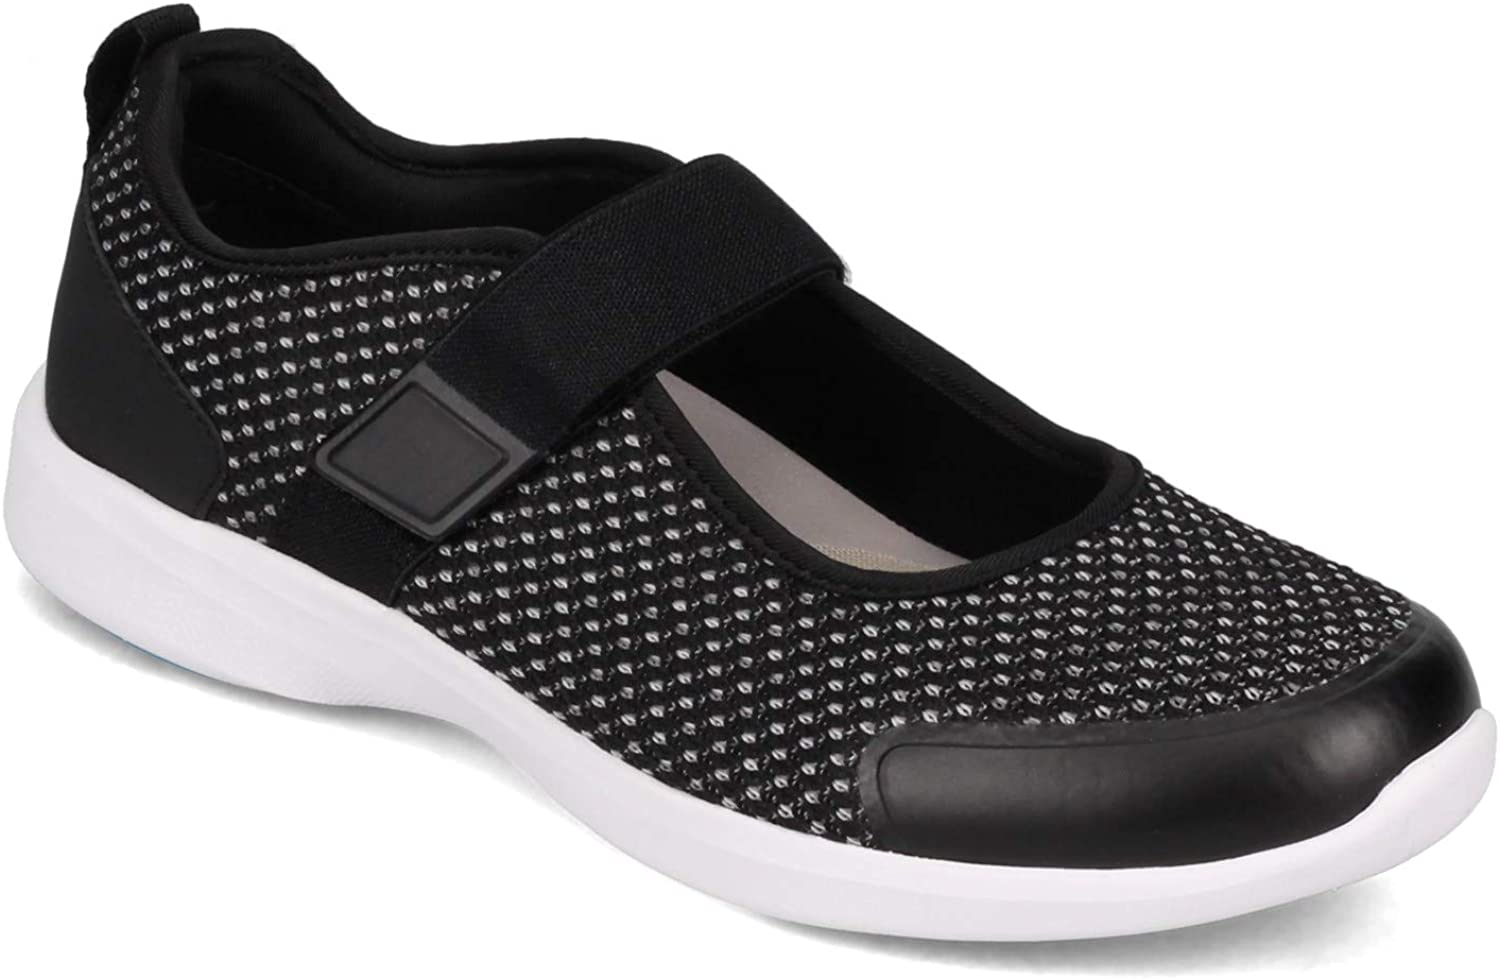 Vionic Women's Sky Jessica II Manufacturer direct delivery Mary Sneaker Walking Shoes - Los Angeles Mall Jane